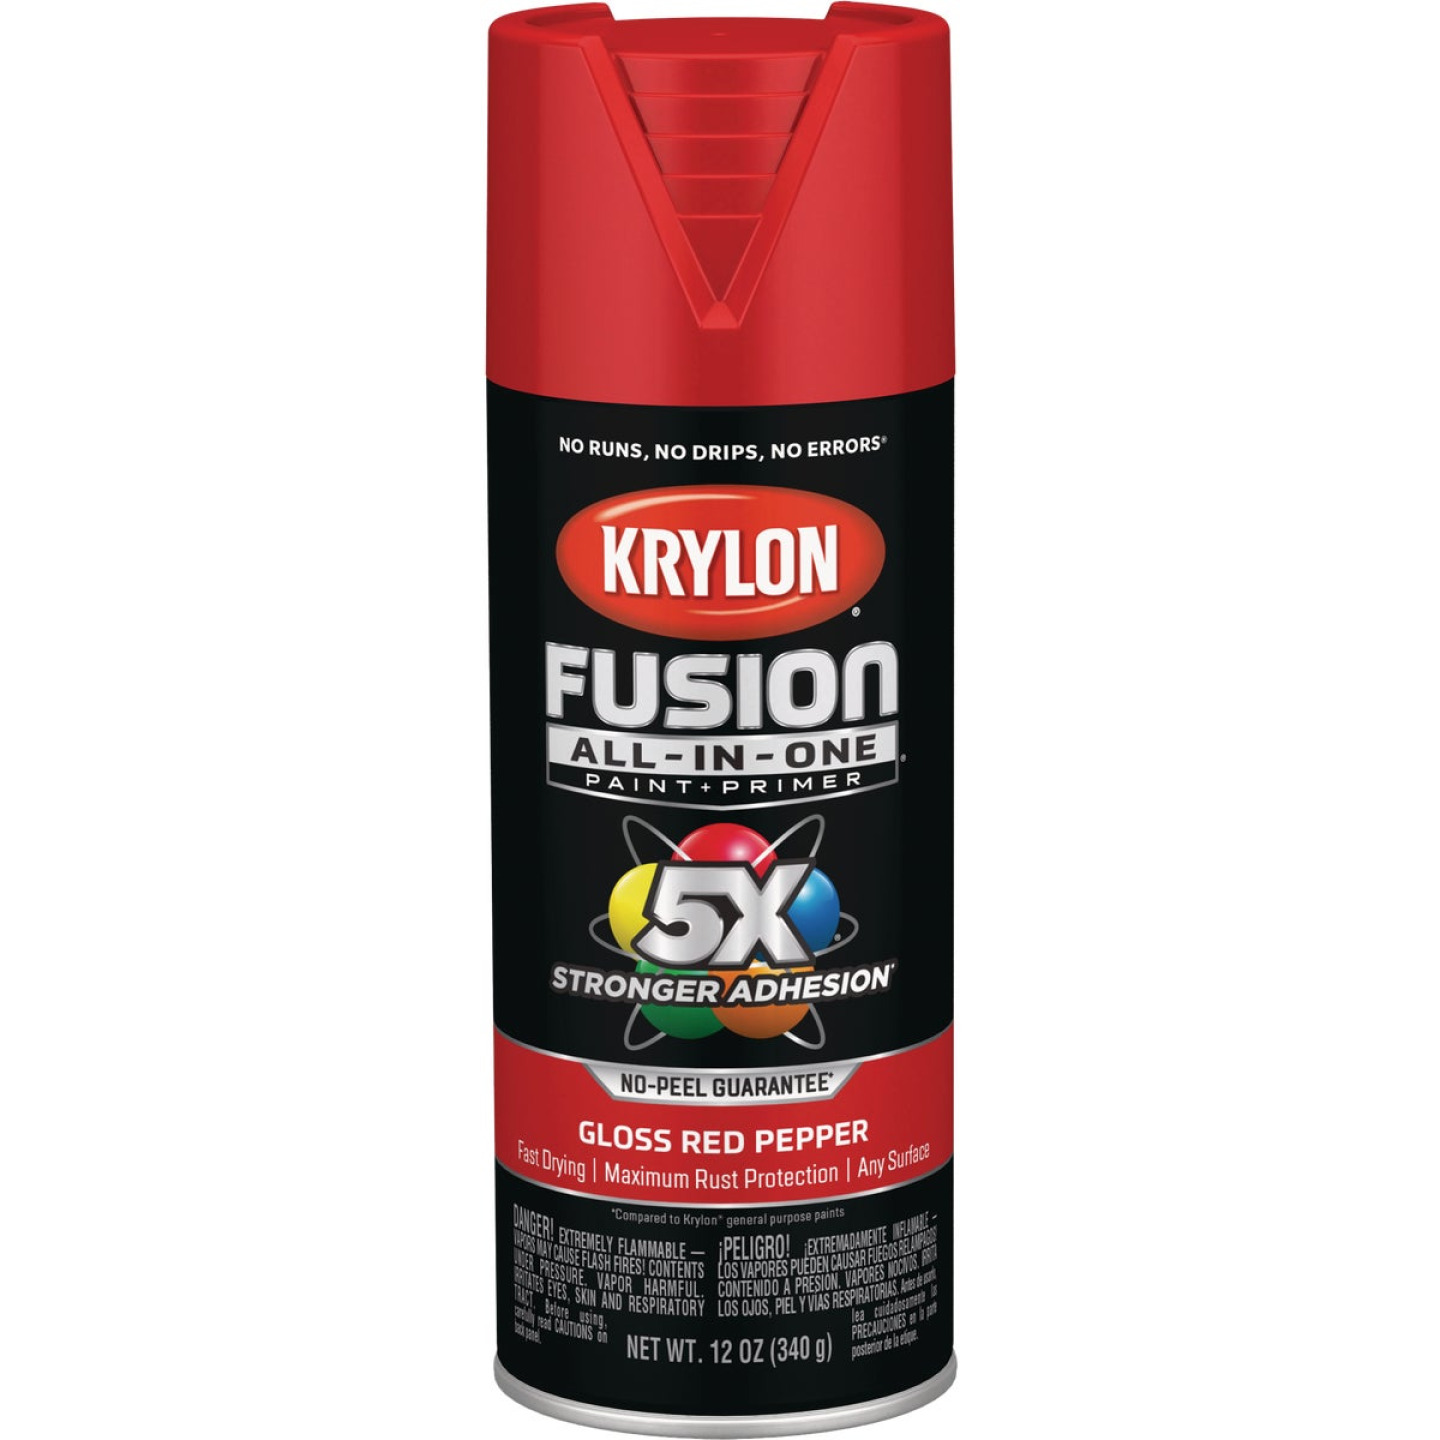 Krylon Fusion All-In-One Gloss Spray Paint & Primer, Red Pepper Image 1